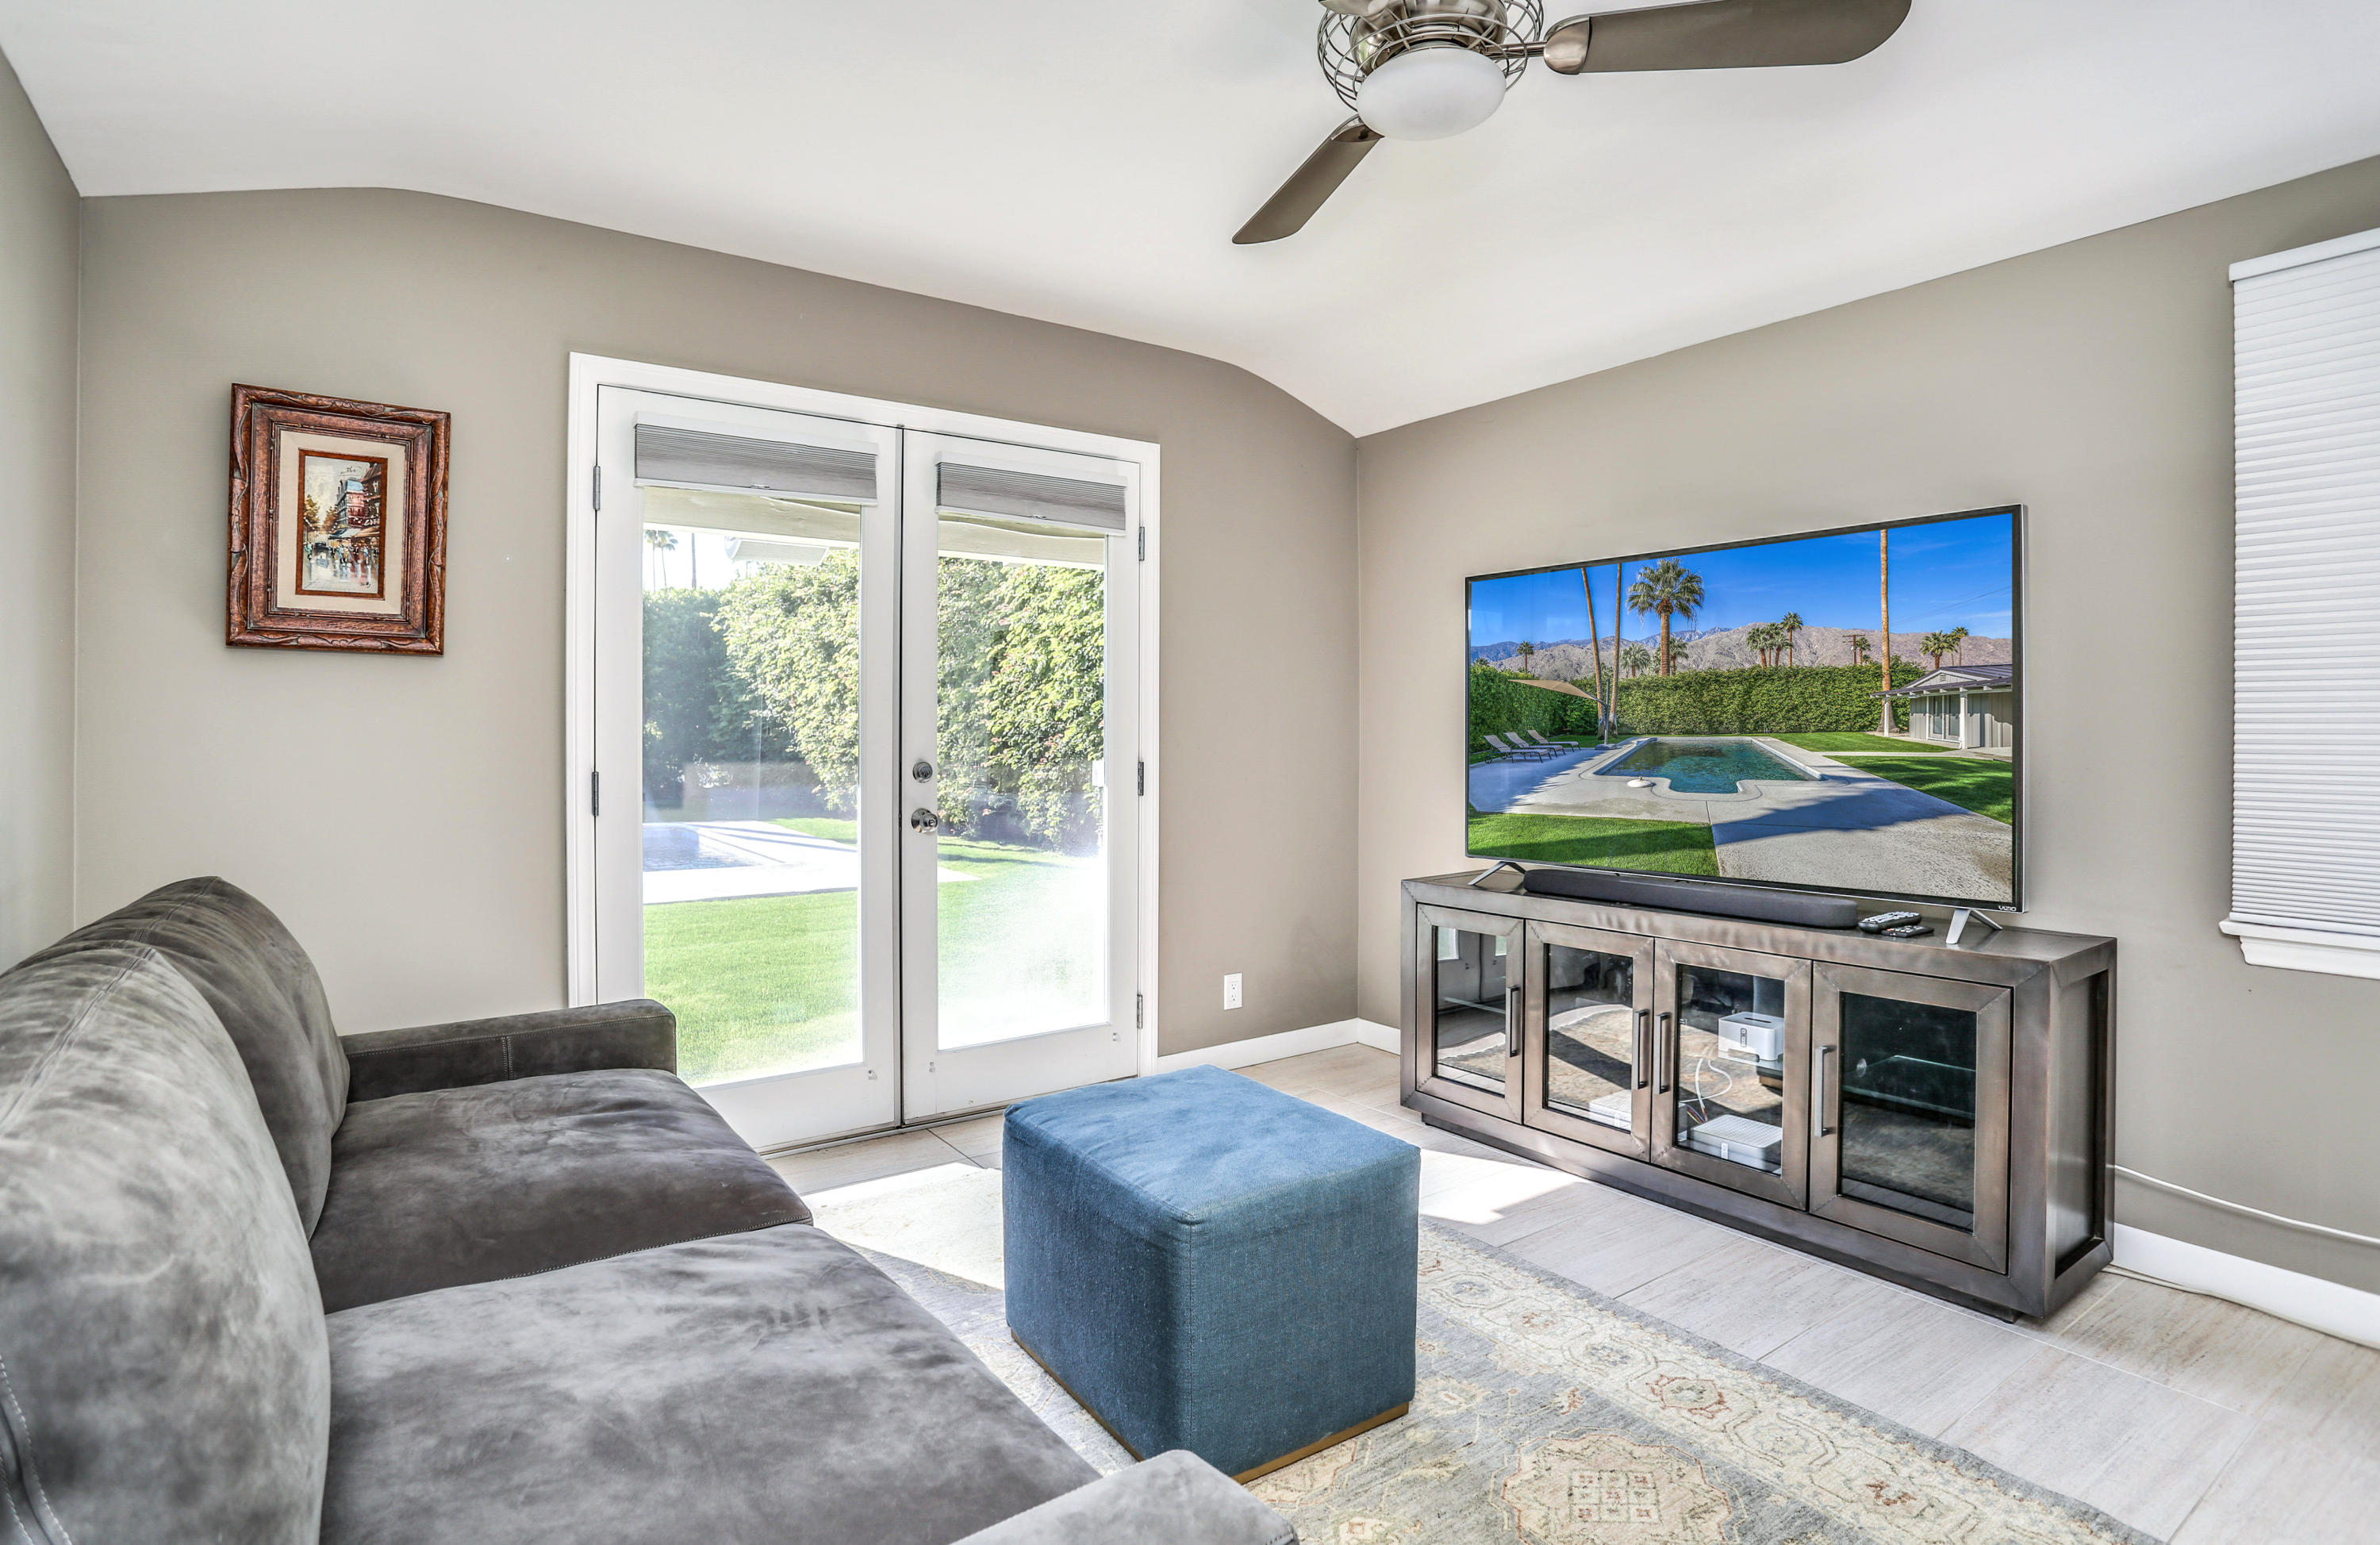 11 Palomino Road, Palm Springs, California 92264, 3 Bedrooms Bedrooms, ,2 BathroomsBathrooms,Residential,For Sale,11 Palomino Road,219037604